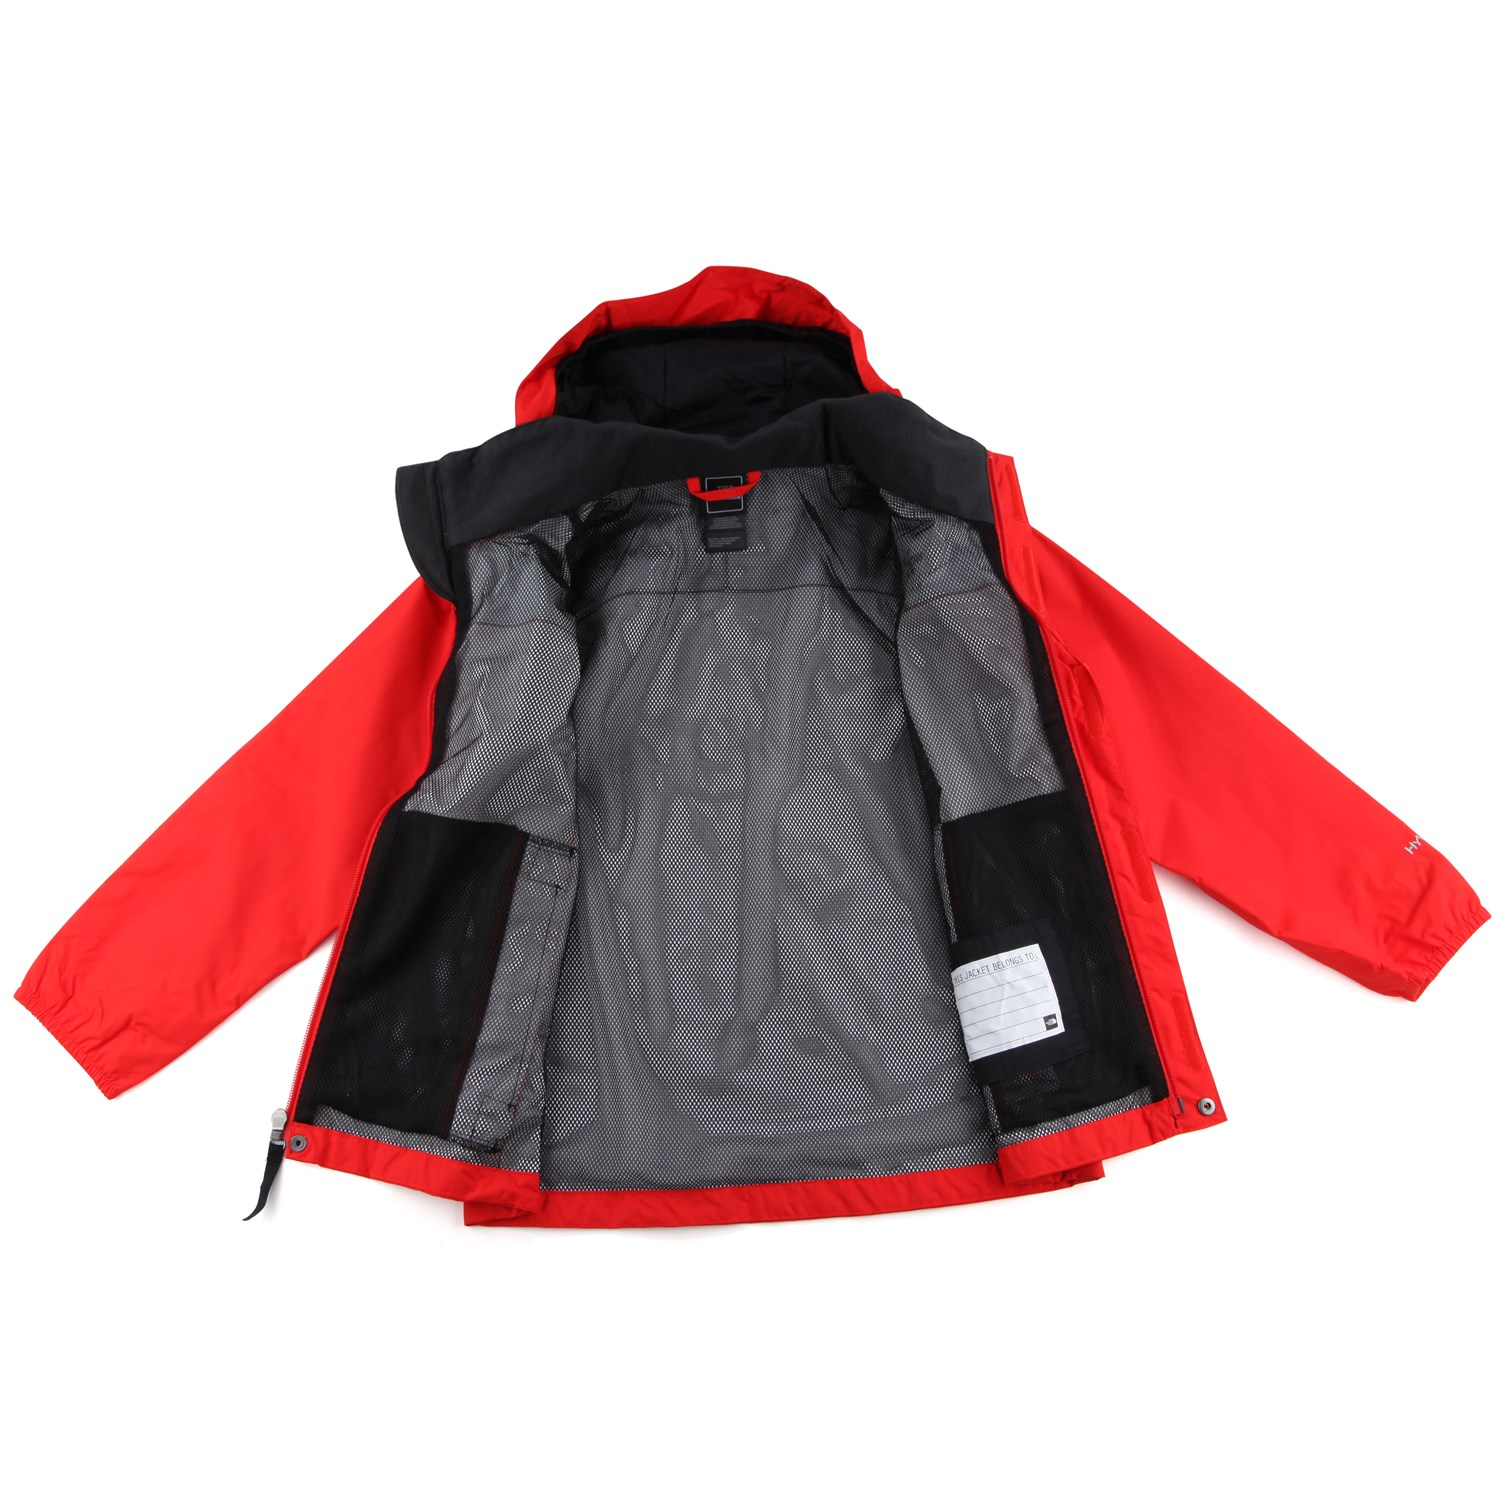 18b57d97ea80 The North Face Resolve Jacket - Youth - Boy s